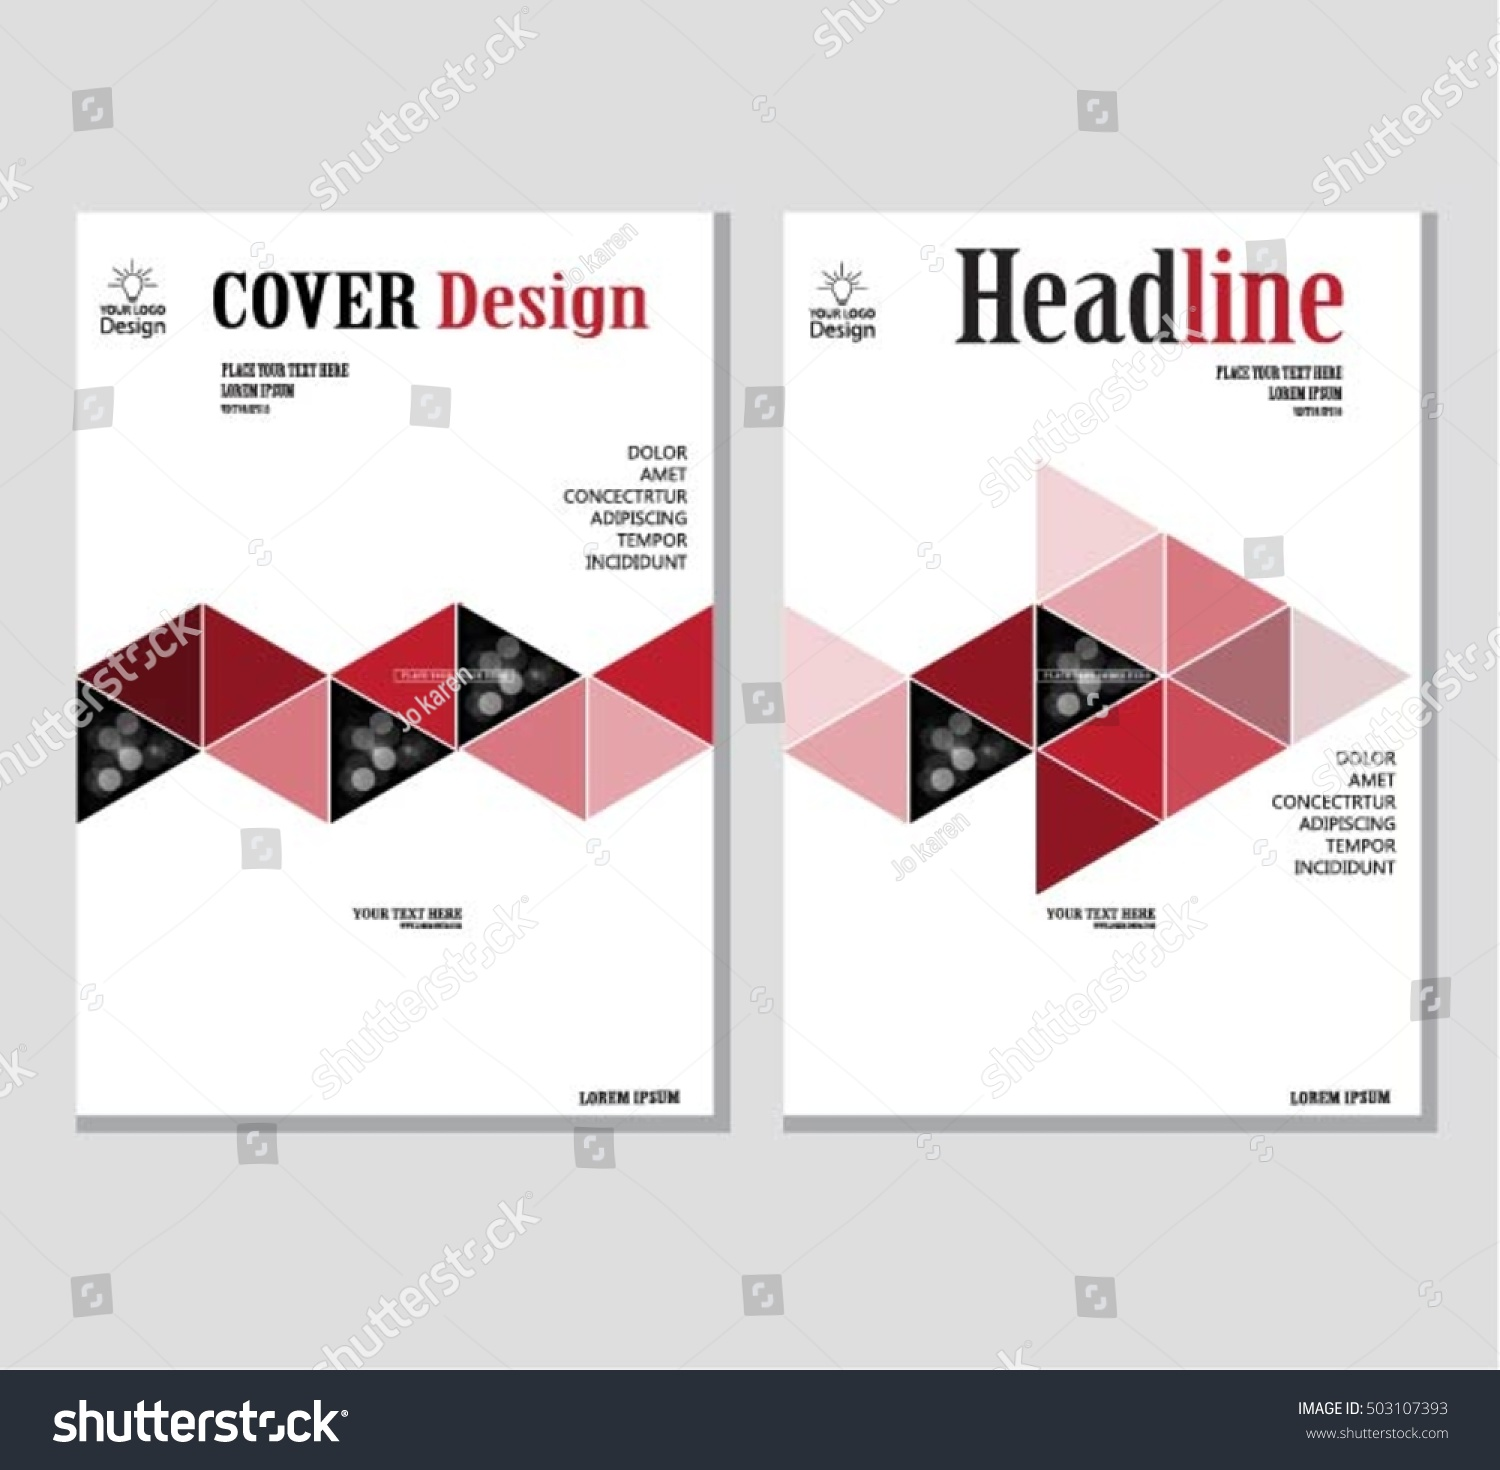 annual business report cover template booklet brochure cover annual business report cover template booklet brochure cover poster presentation business